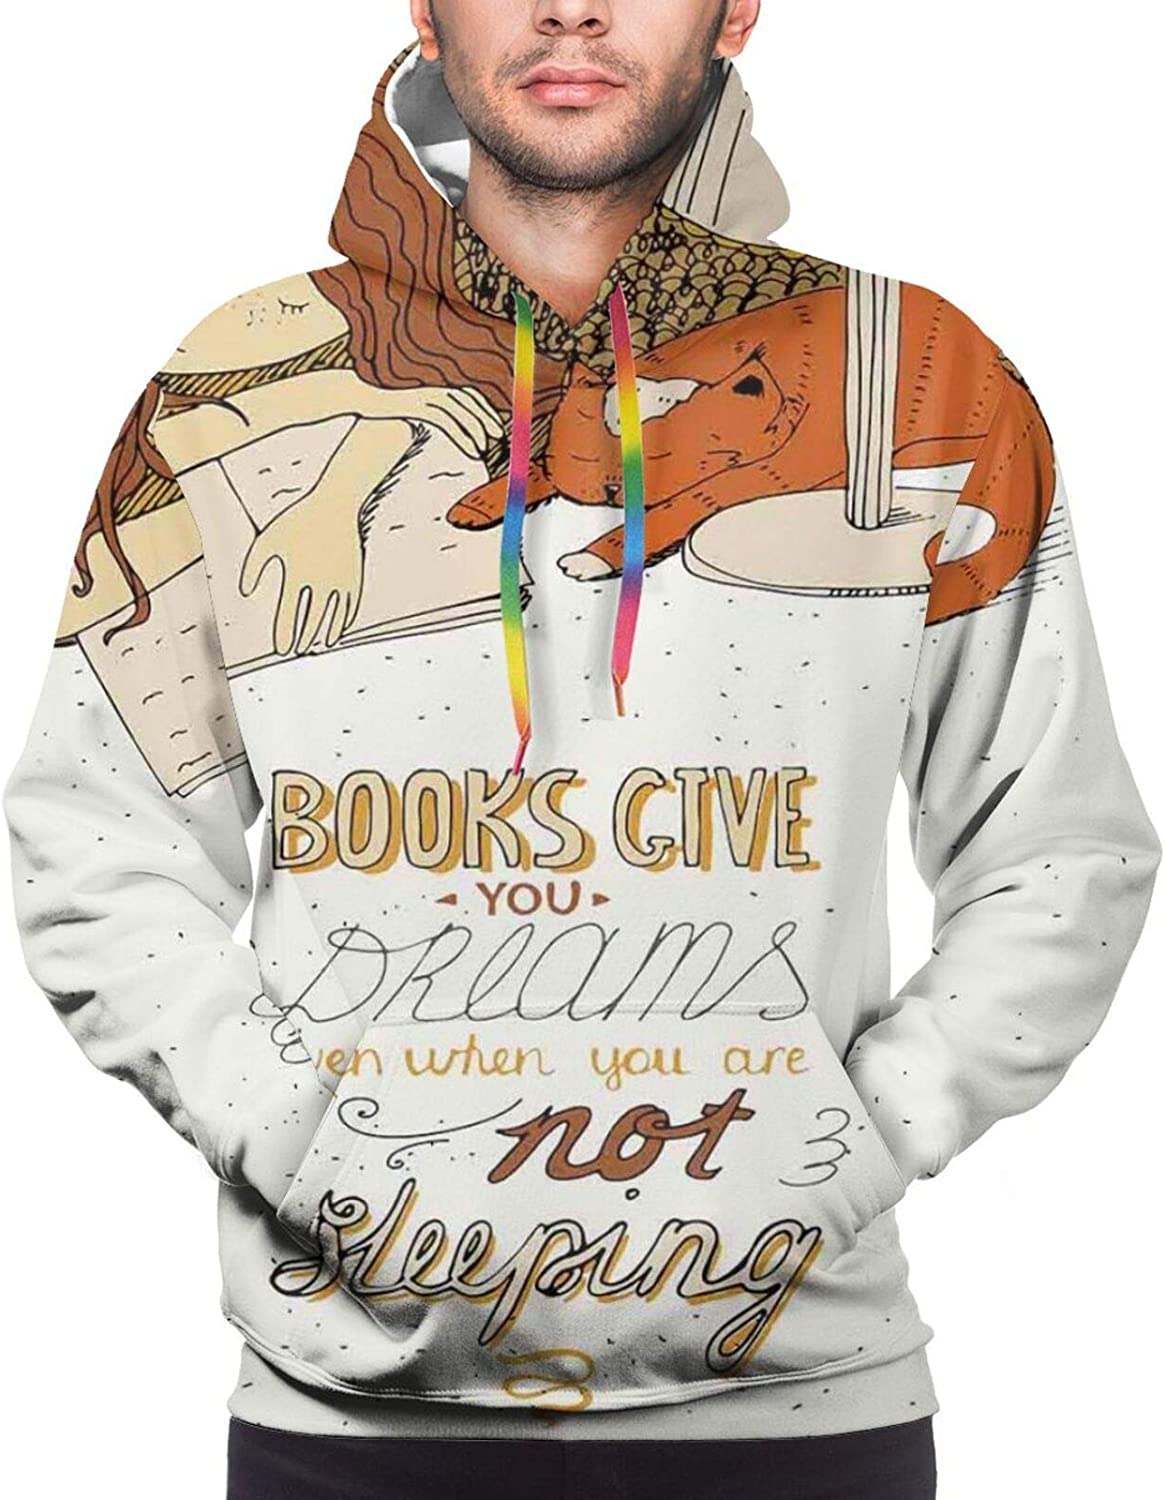 Men's Hoodies Sweatshirts,Books are Bricks in The Wall Print Black and White Illustration Girl Caressing Cat